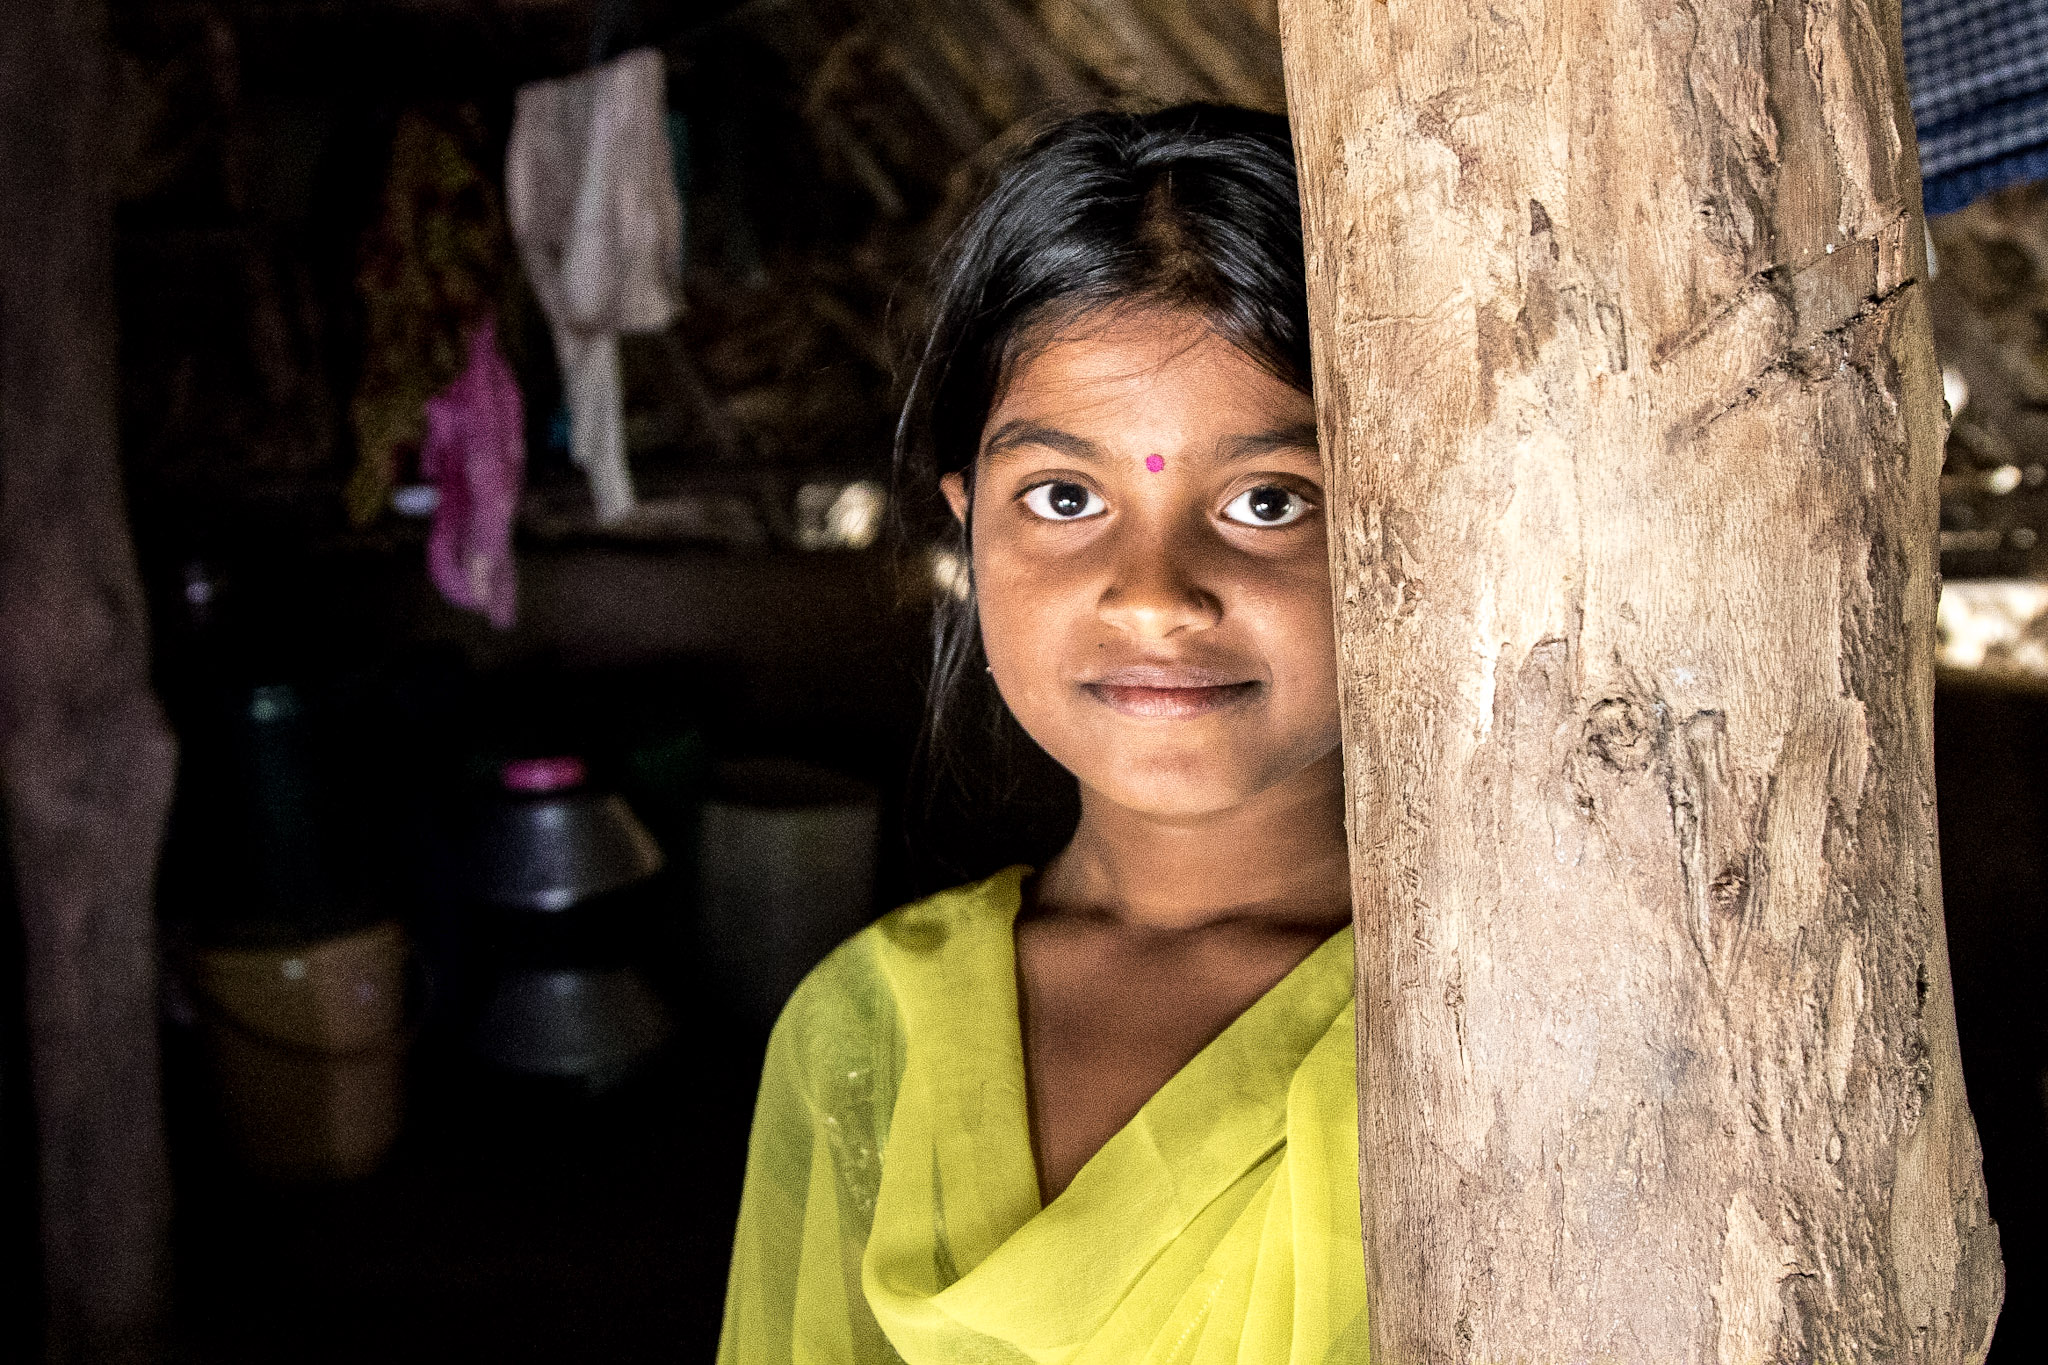 The issue disproportionately affects girls like Meena.